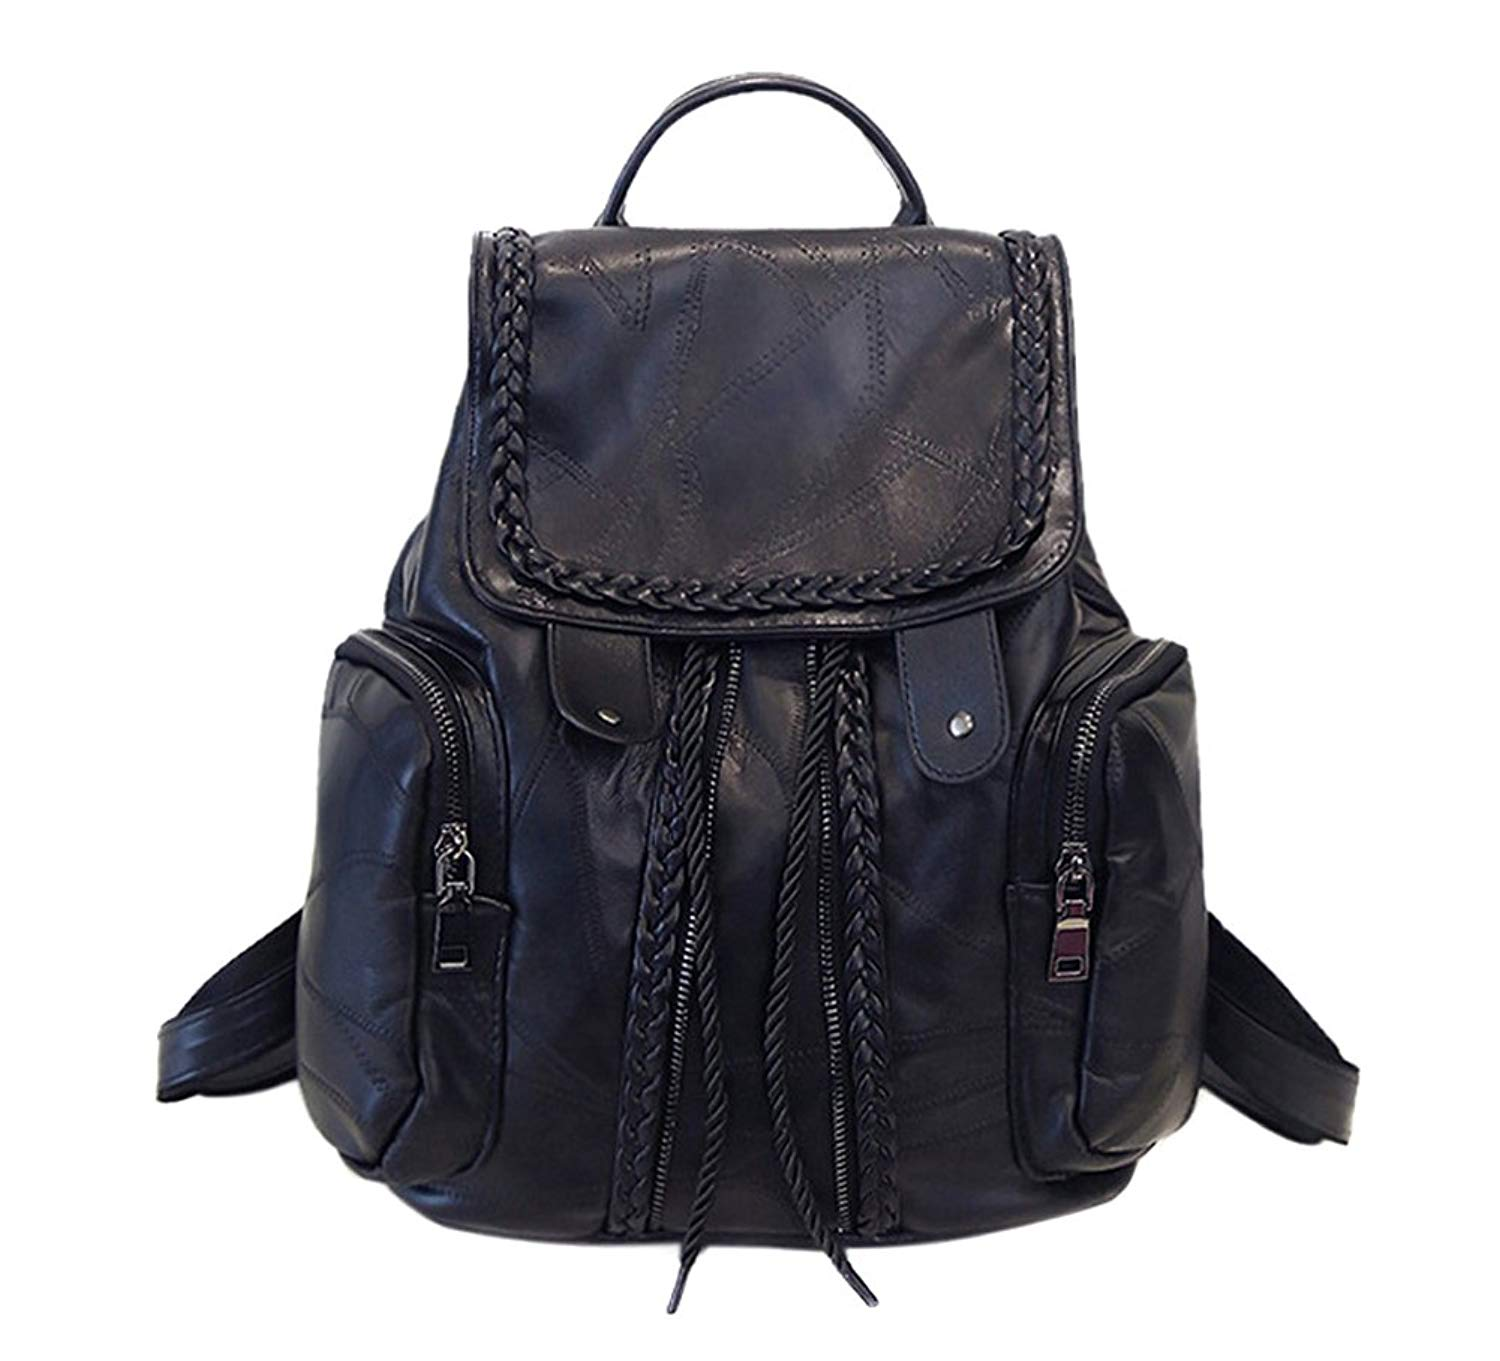 Women's Leather Backpack, PU Leather Backpack for Women, Soft & Fashion Leather Lovely Backpack Cute School Bag Shoulder Bag for Girls